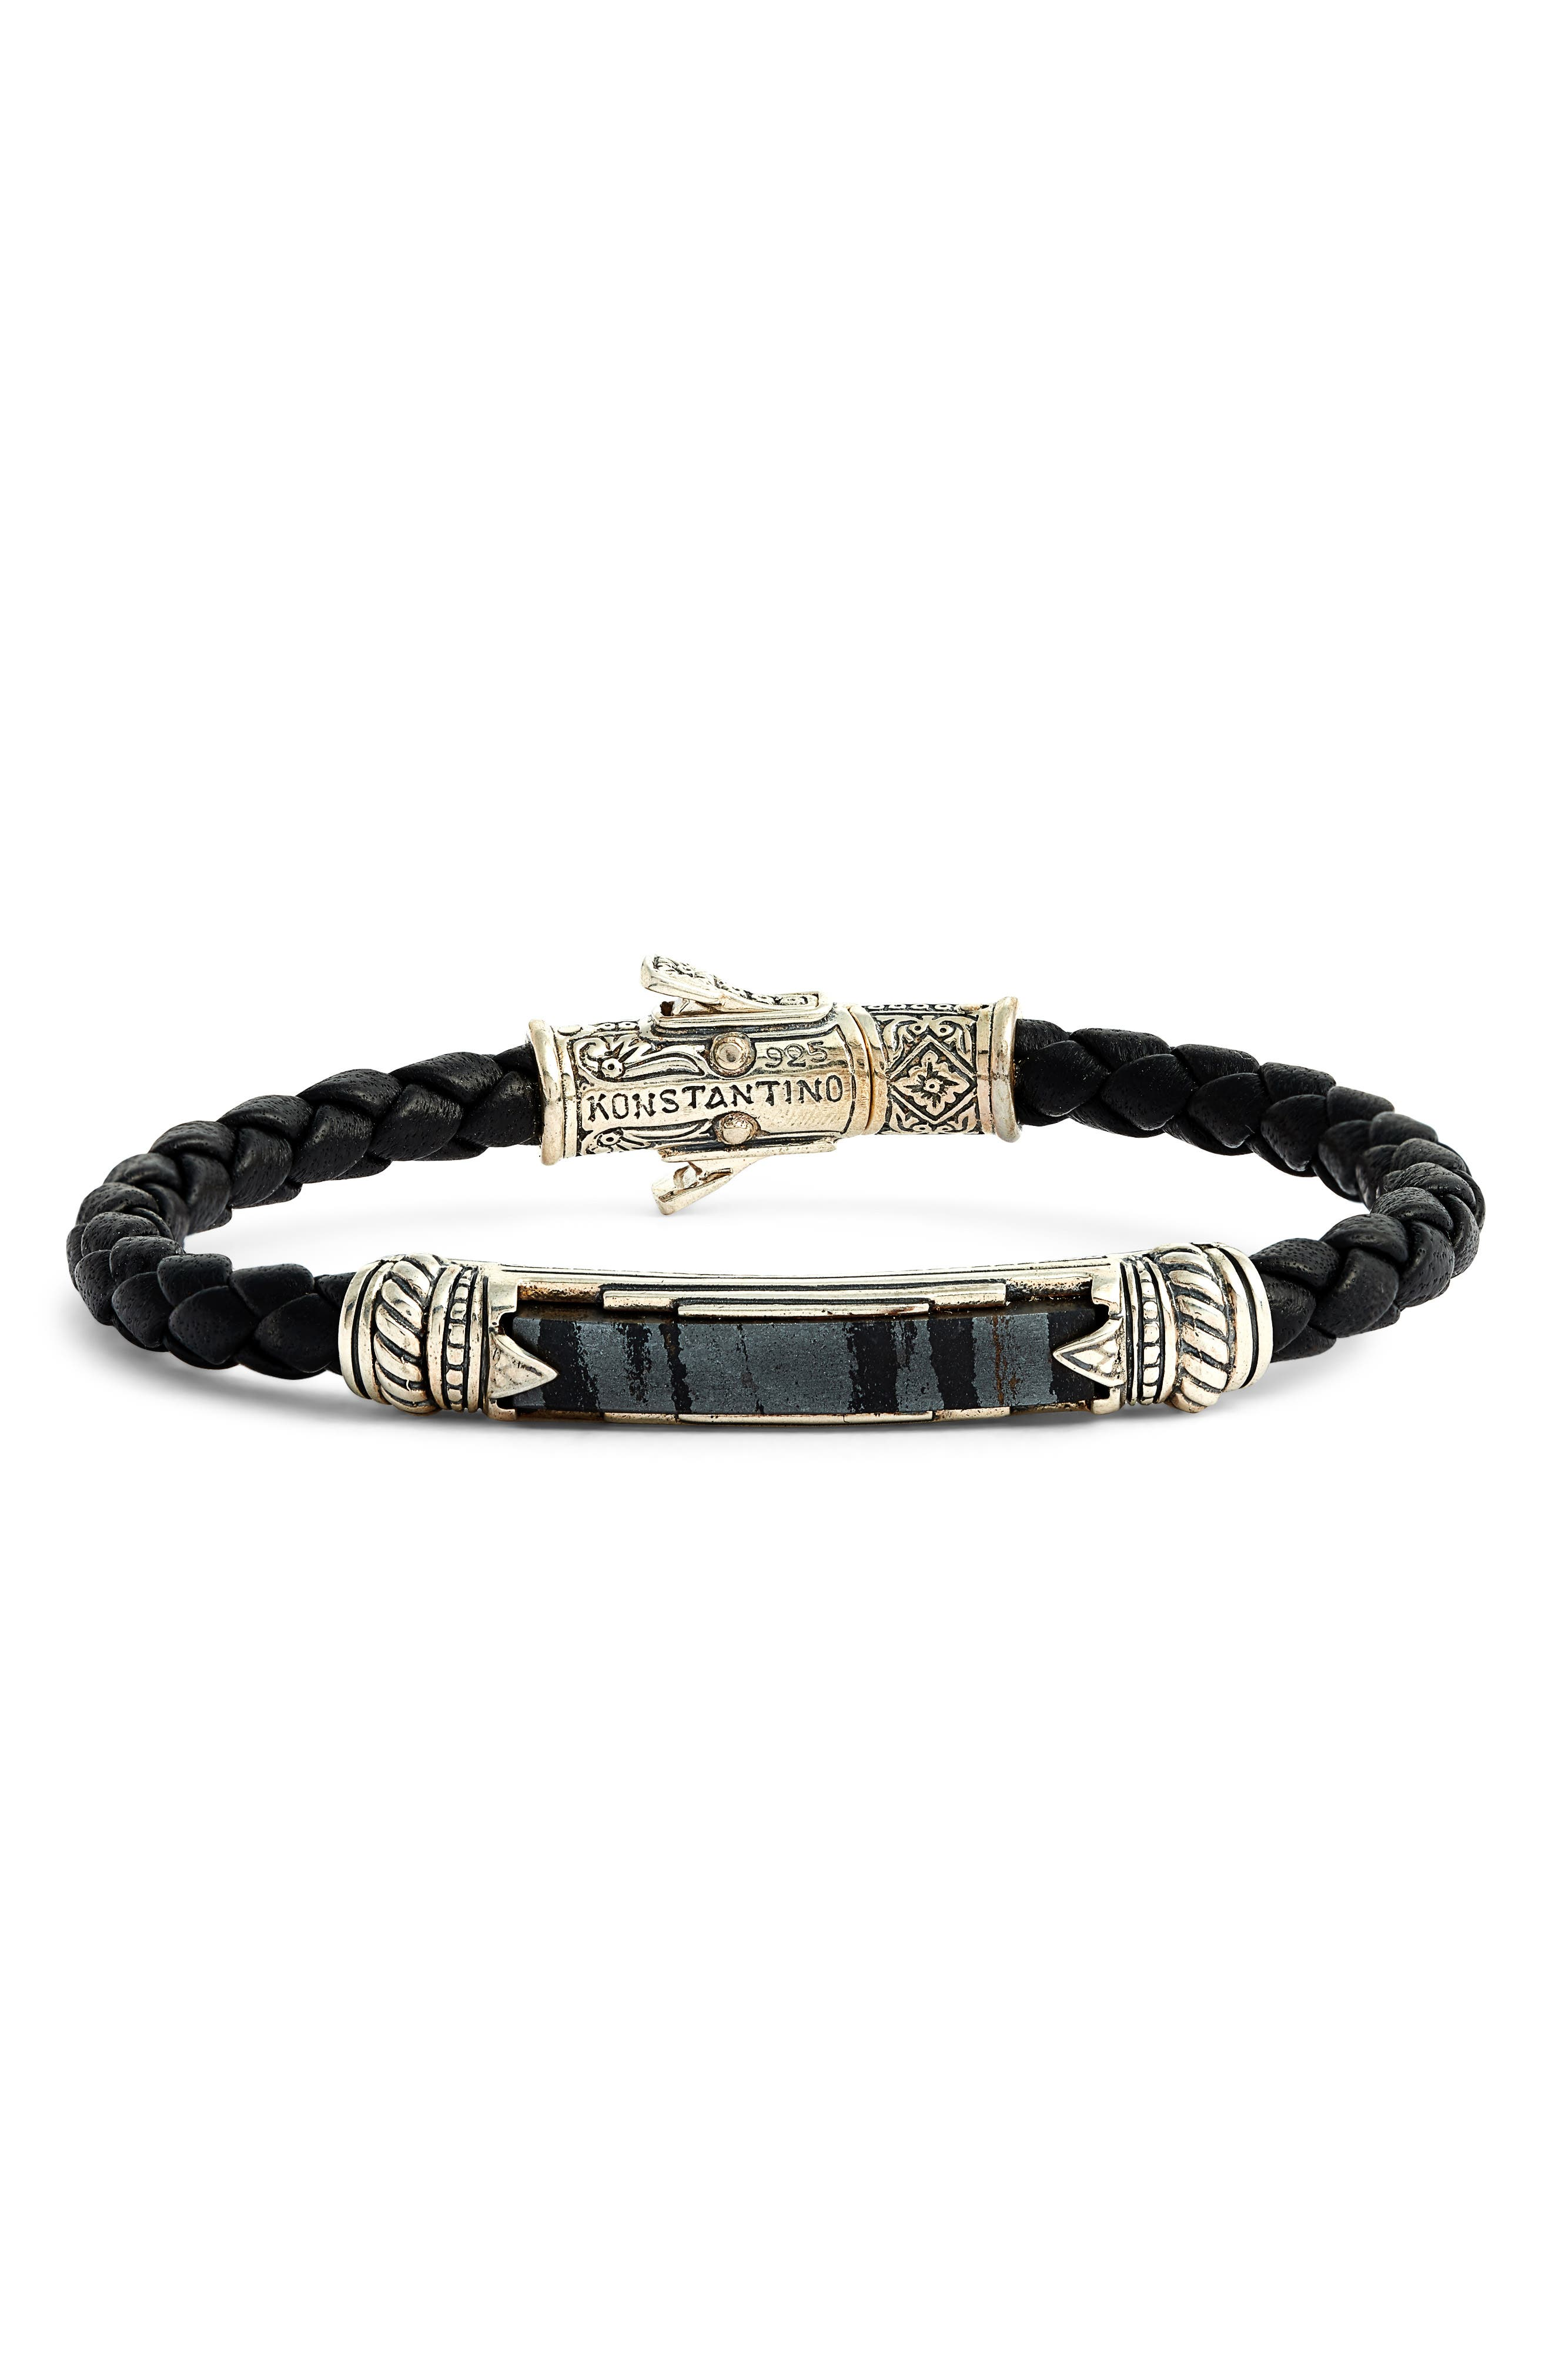 A treasure inspired by ancient Grecian art, this braided leather bracelet is artisan crafted with a ferrite station in a setting of intricately carved sterling silver. A logo-etched clasp of 18-karat gold adds an opulent touch. Style Name: Konstantino Perseus Leather & Ferrite Bracelet. Style Number: 5928161. Available in stores.